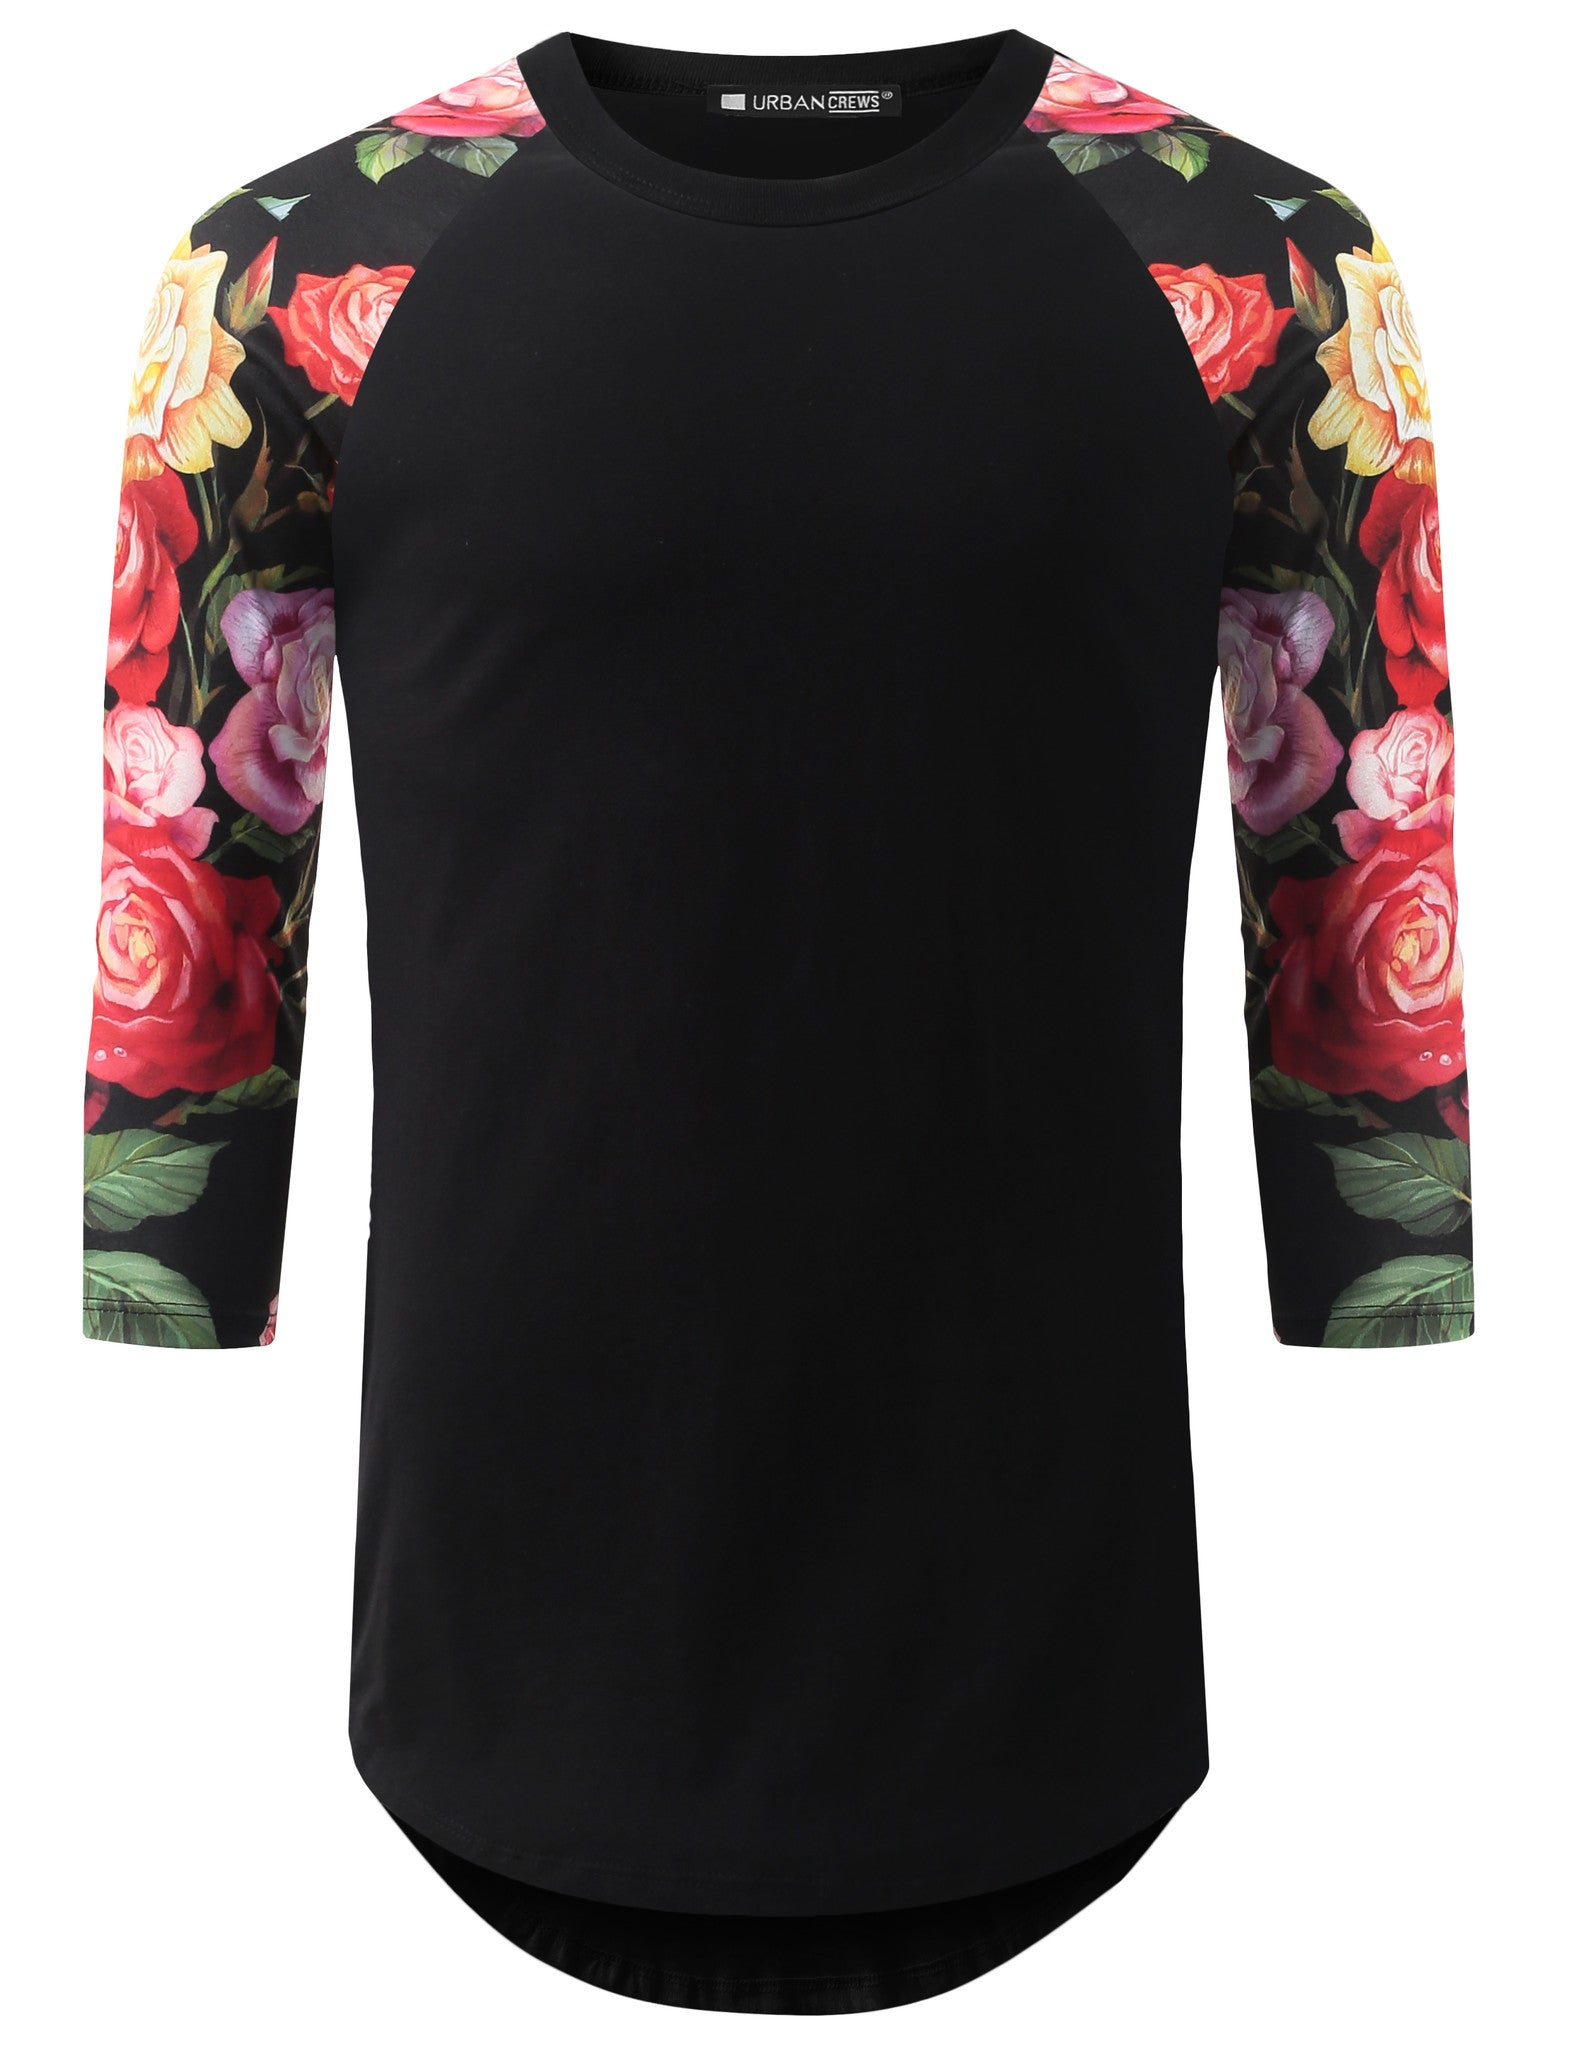 BLACK 3/4 Sleeve Multi Roses Longline Raglan Baseball Shirt- URBANCREWS